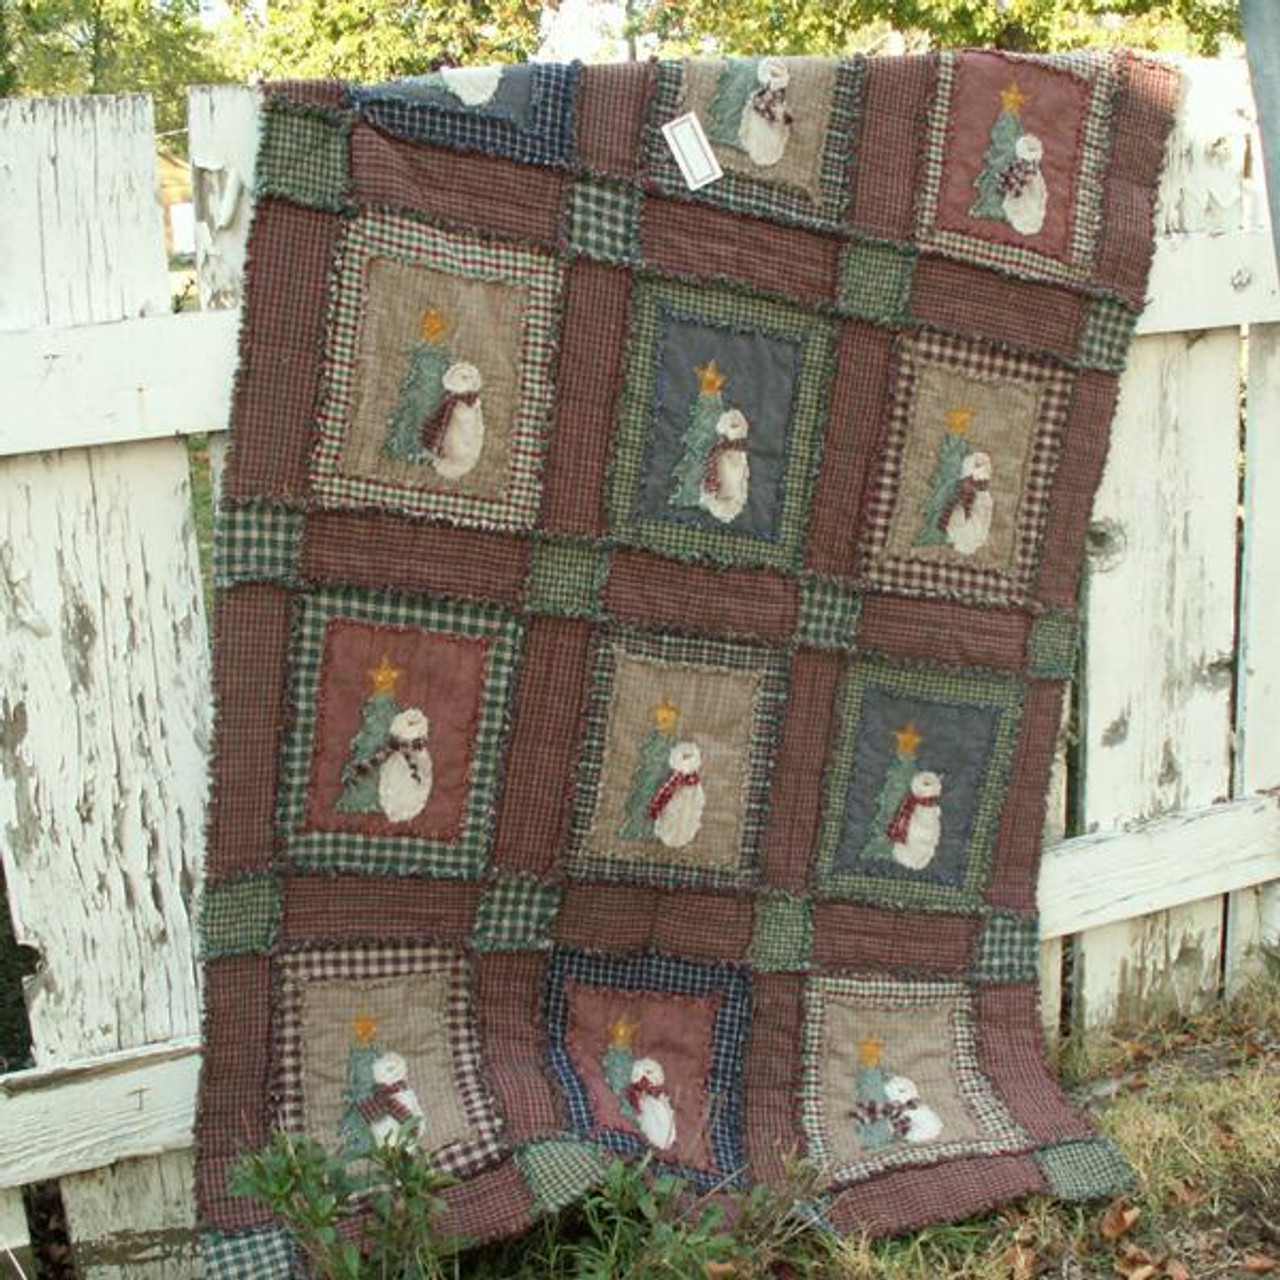 Ragged Shabby Snowman Quilt Pattern - Printed